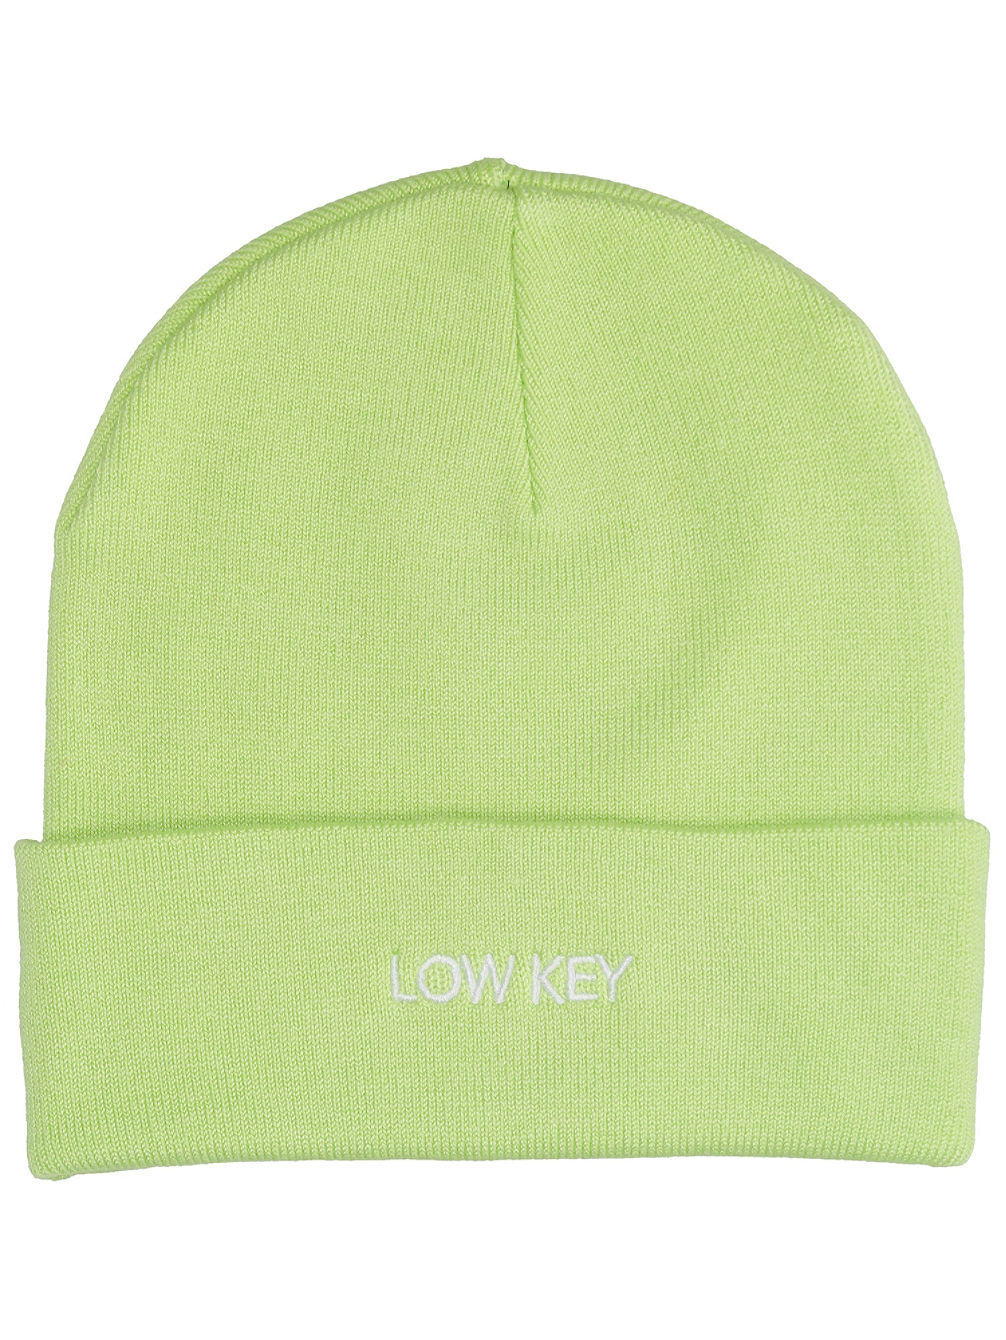 Sterling Low Key Beanie